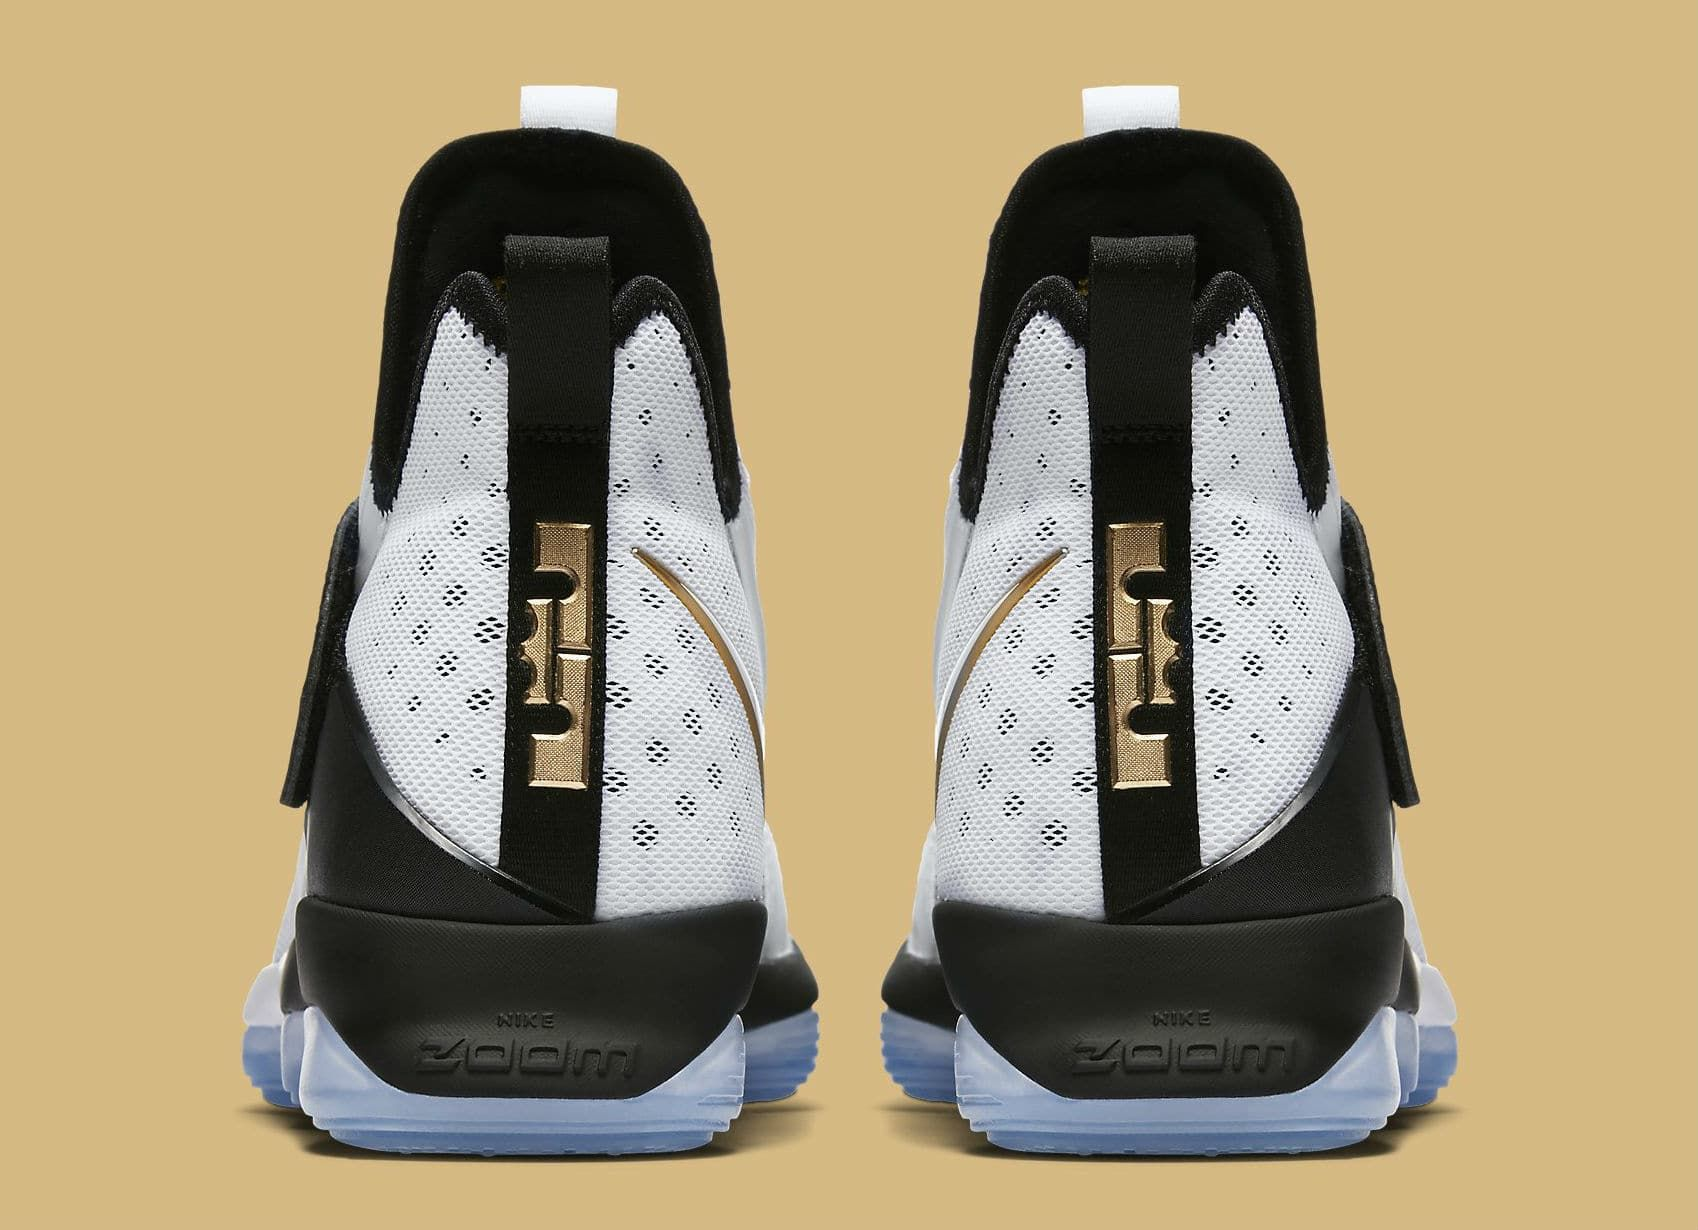 new product d31a8 6e504 Nike LeBron 14 - Ankle Support - Nike LeBron 14 Performance Review   Sole  Collector Lebron